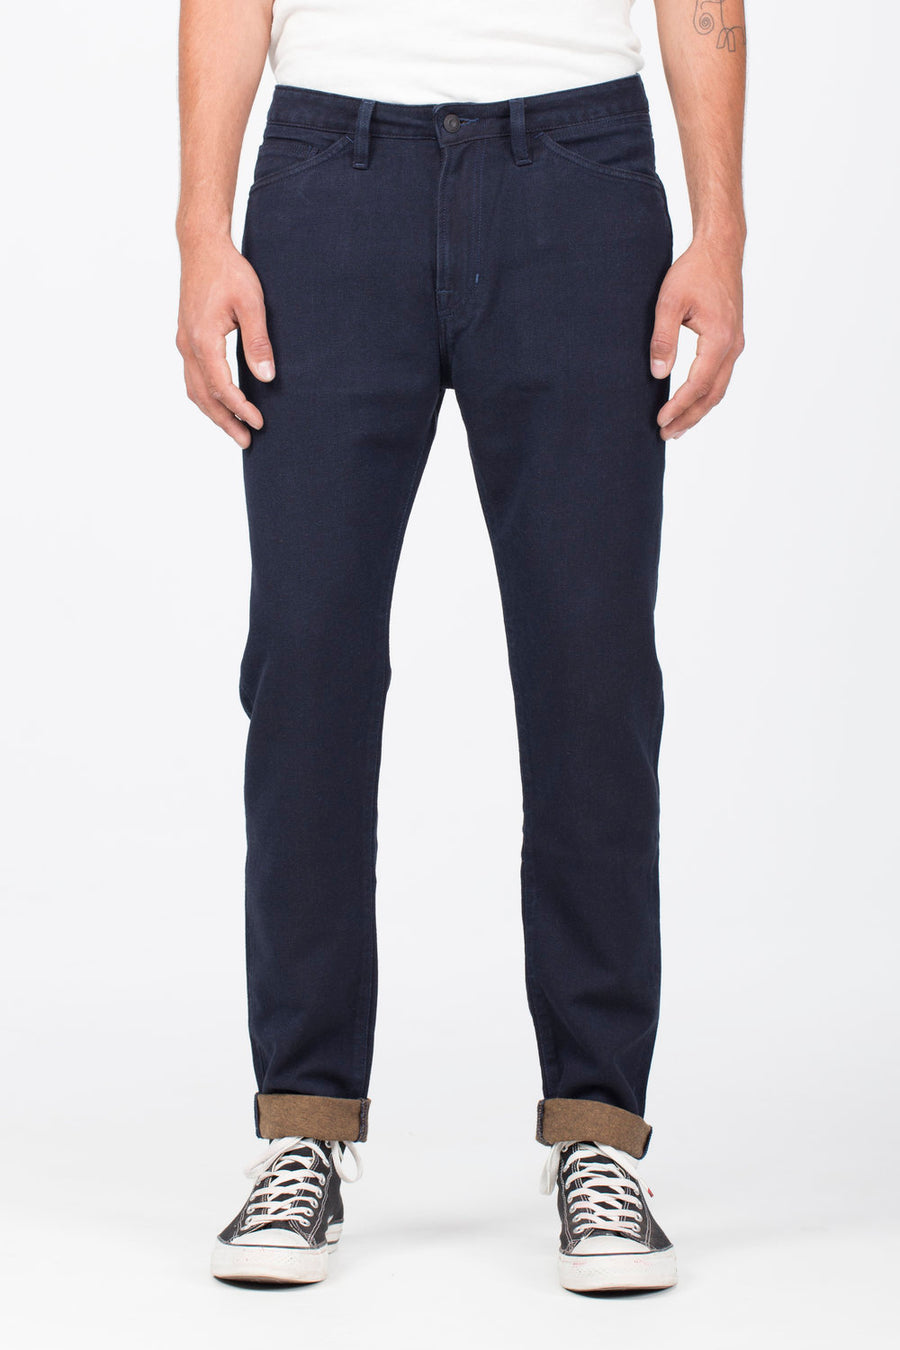 Benzak BP-01 Worker Pants 10oz (Indigo)